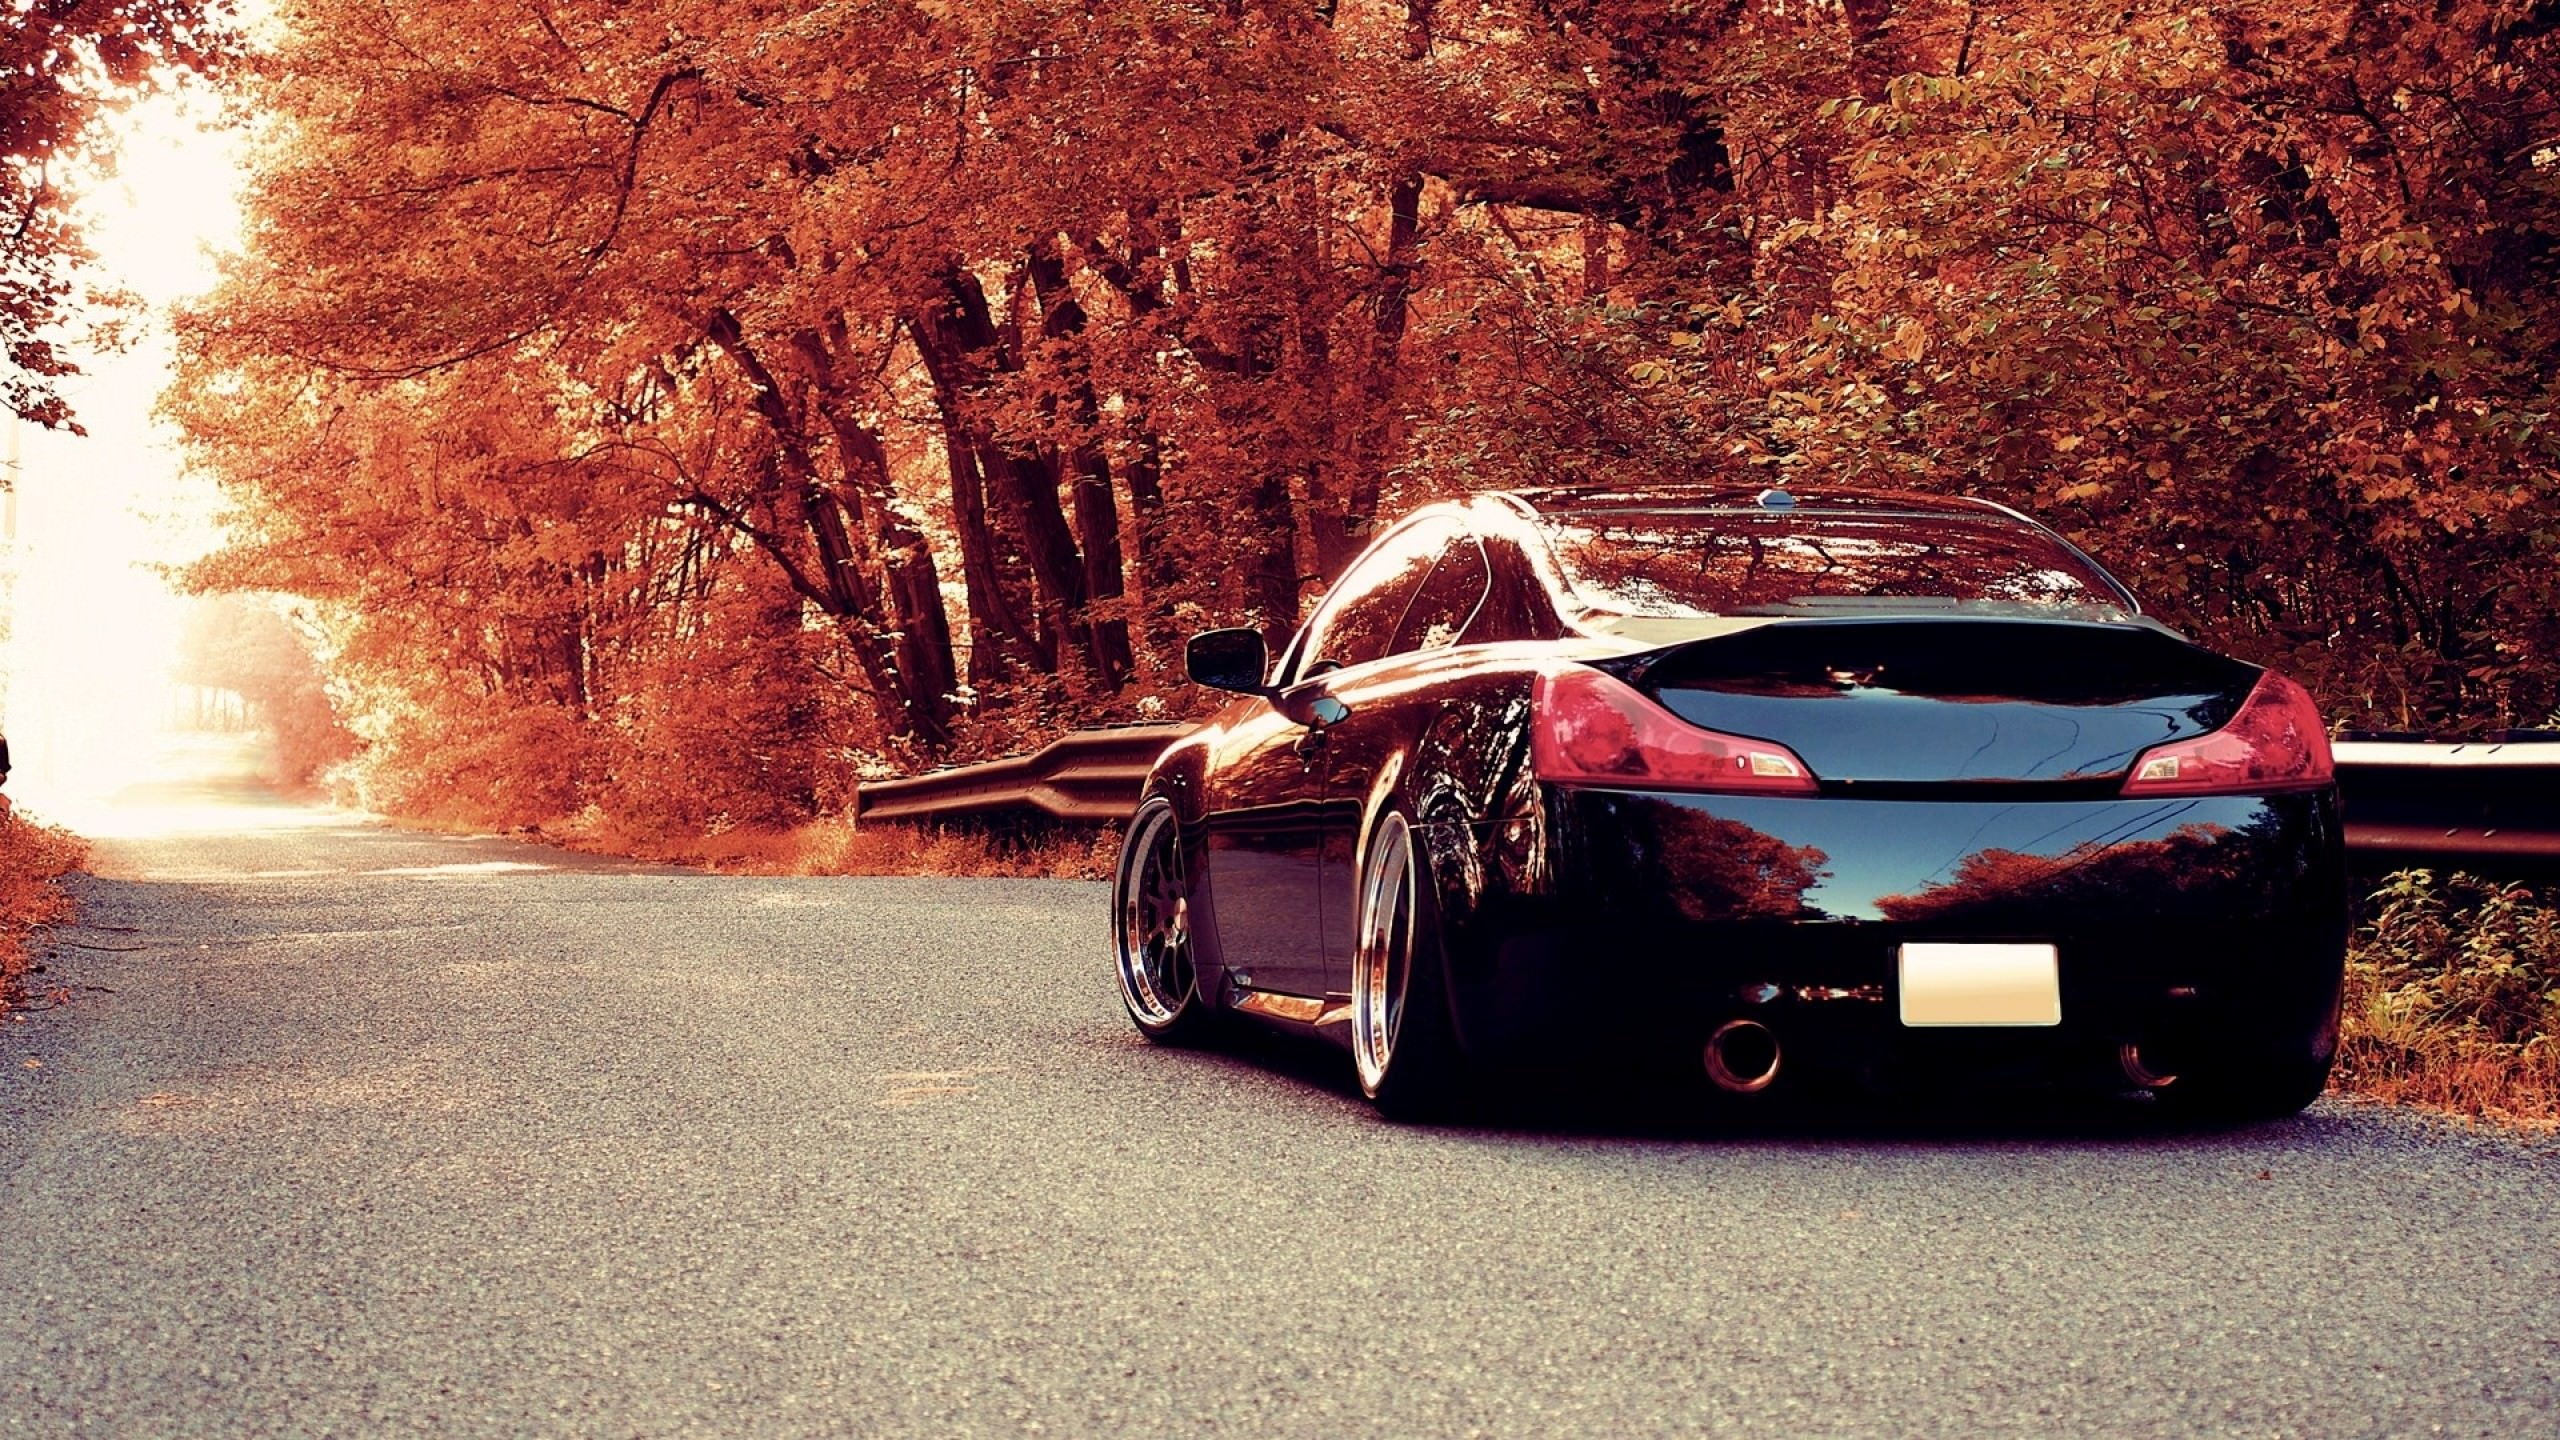 autumn car wallpaper